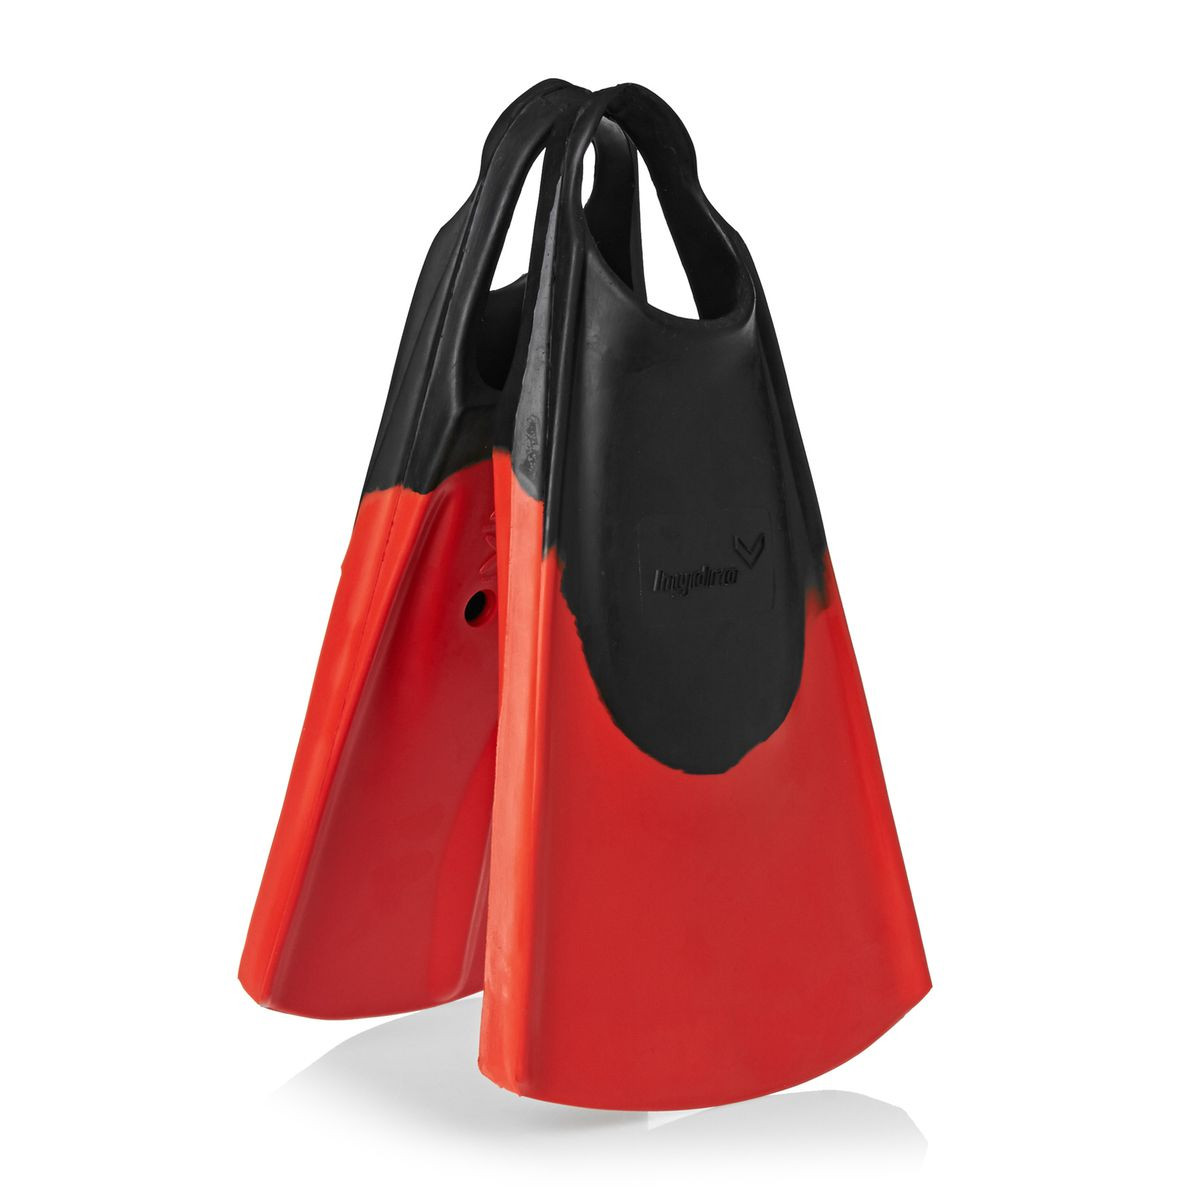 Hydro Original Bodyboard Fins - Black/ Red